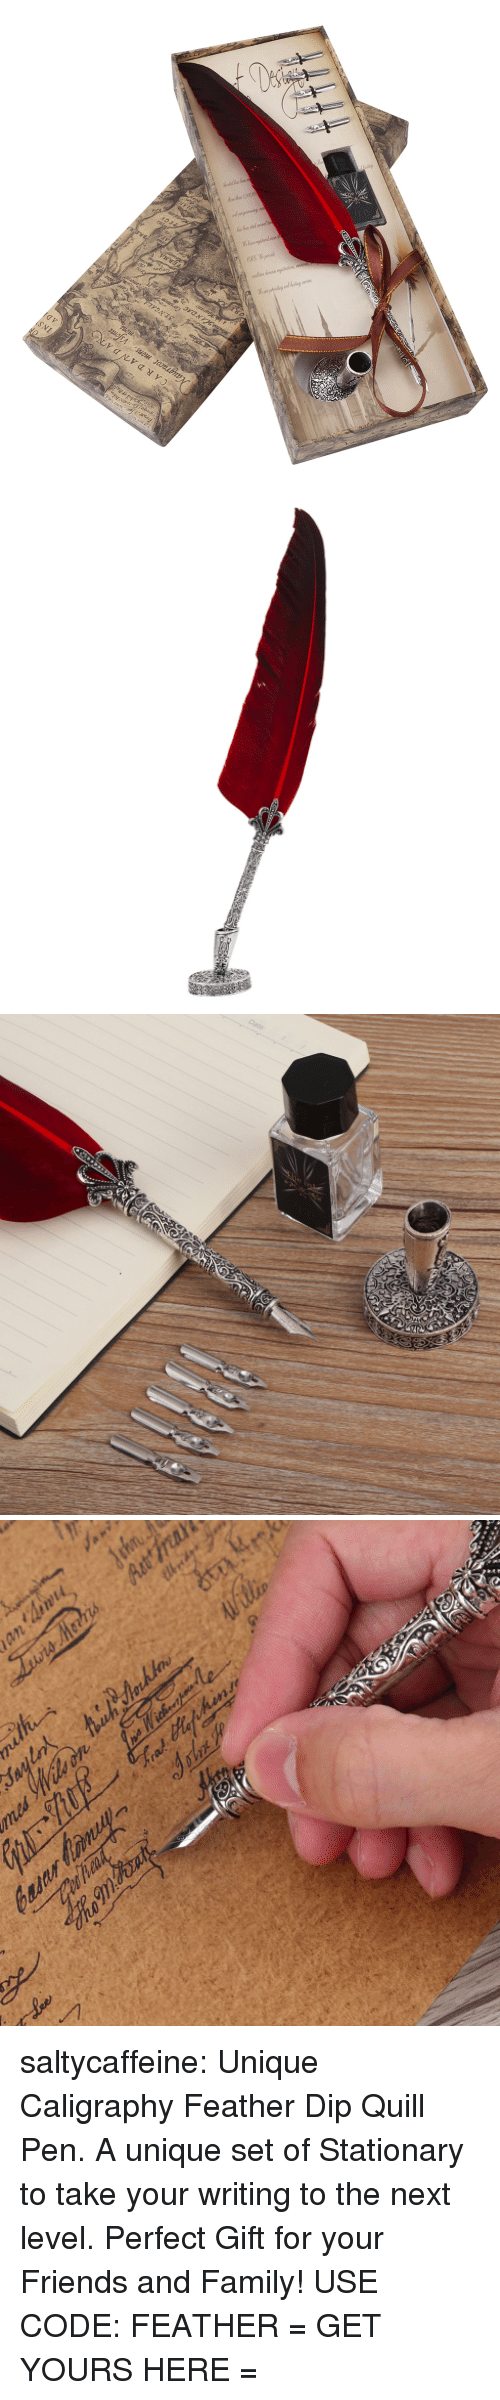 Quill: saltycaffeine: Unique Caligraphy Feather Dip Quill Pen. A unique set of Stationary to take your writing to the next level. Perfect Gift for your Friends and Family! USE CODE: FEATHER = GET YOURS HERE =